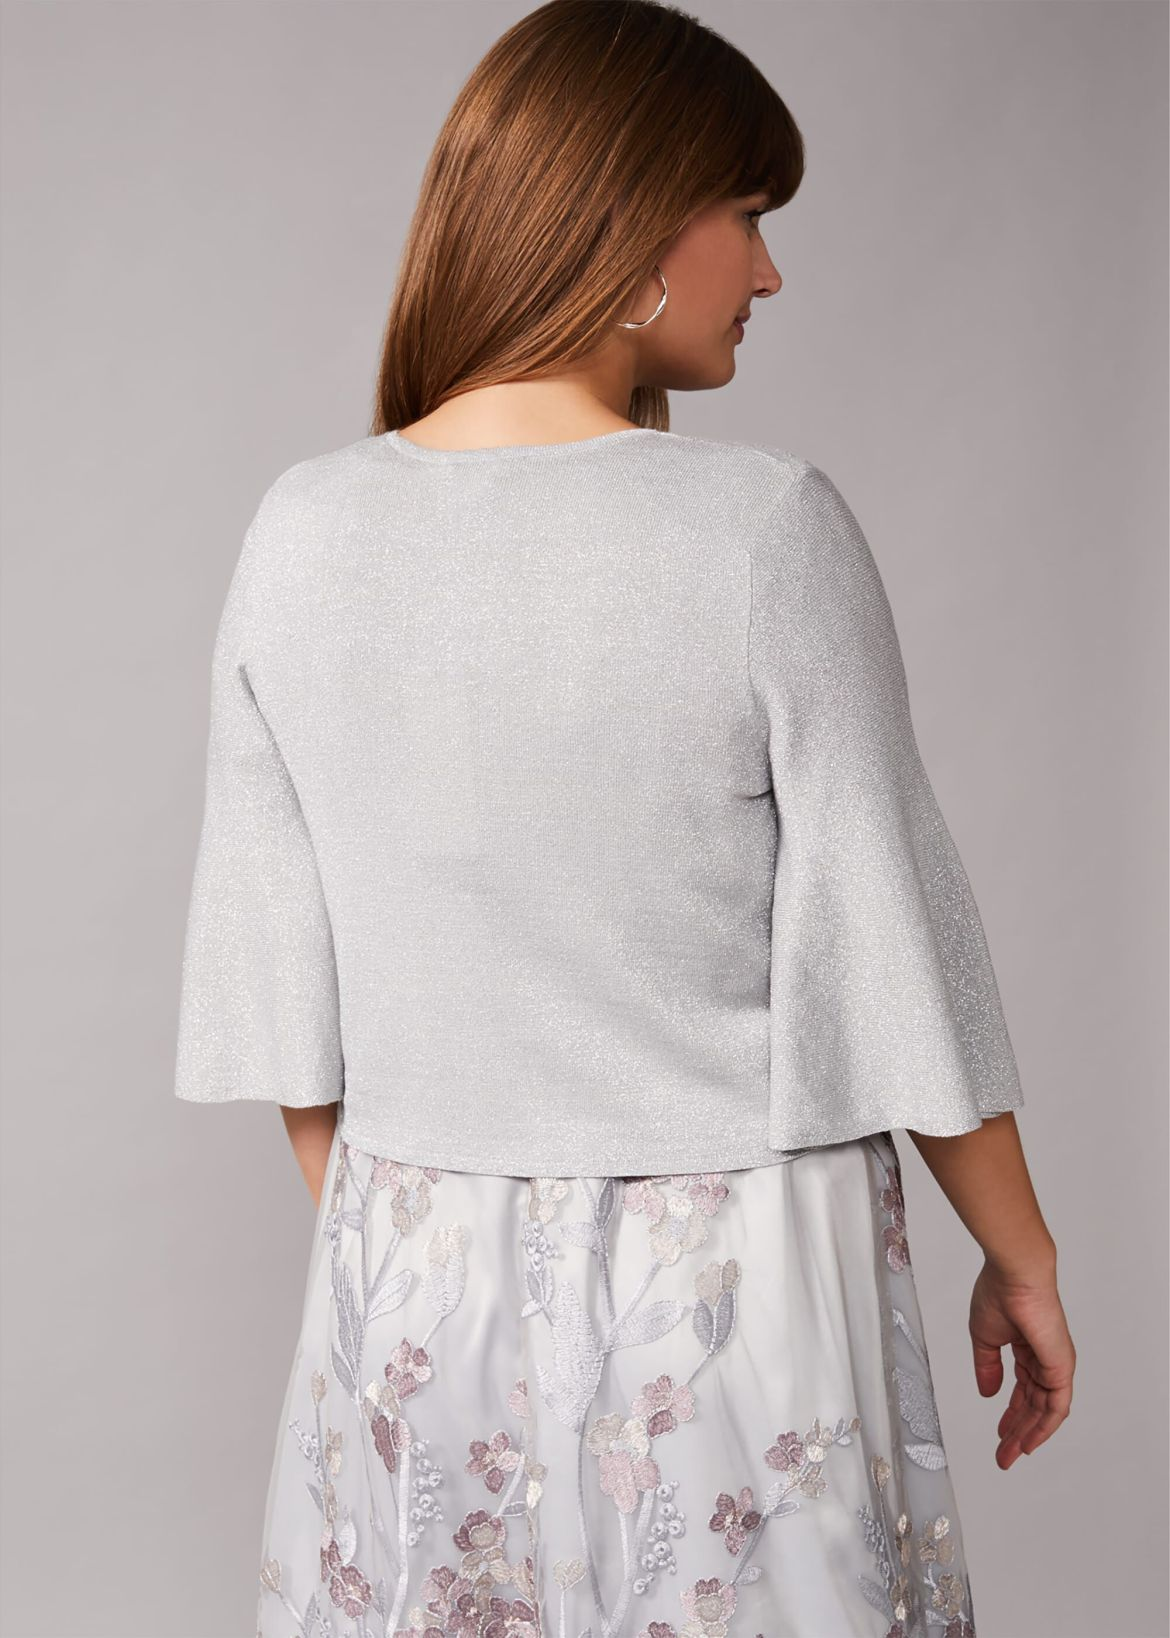 Tonie Shimmer Knitted Cover Up